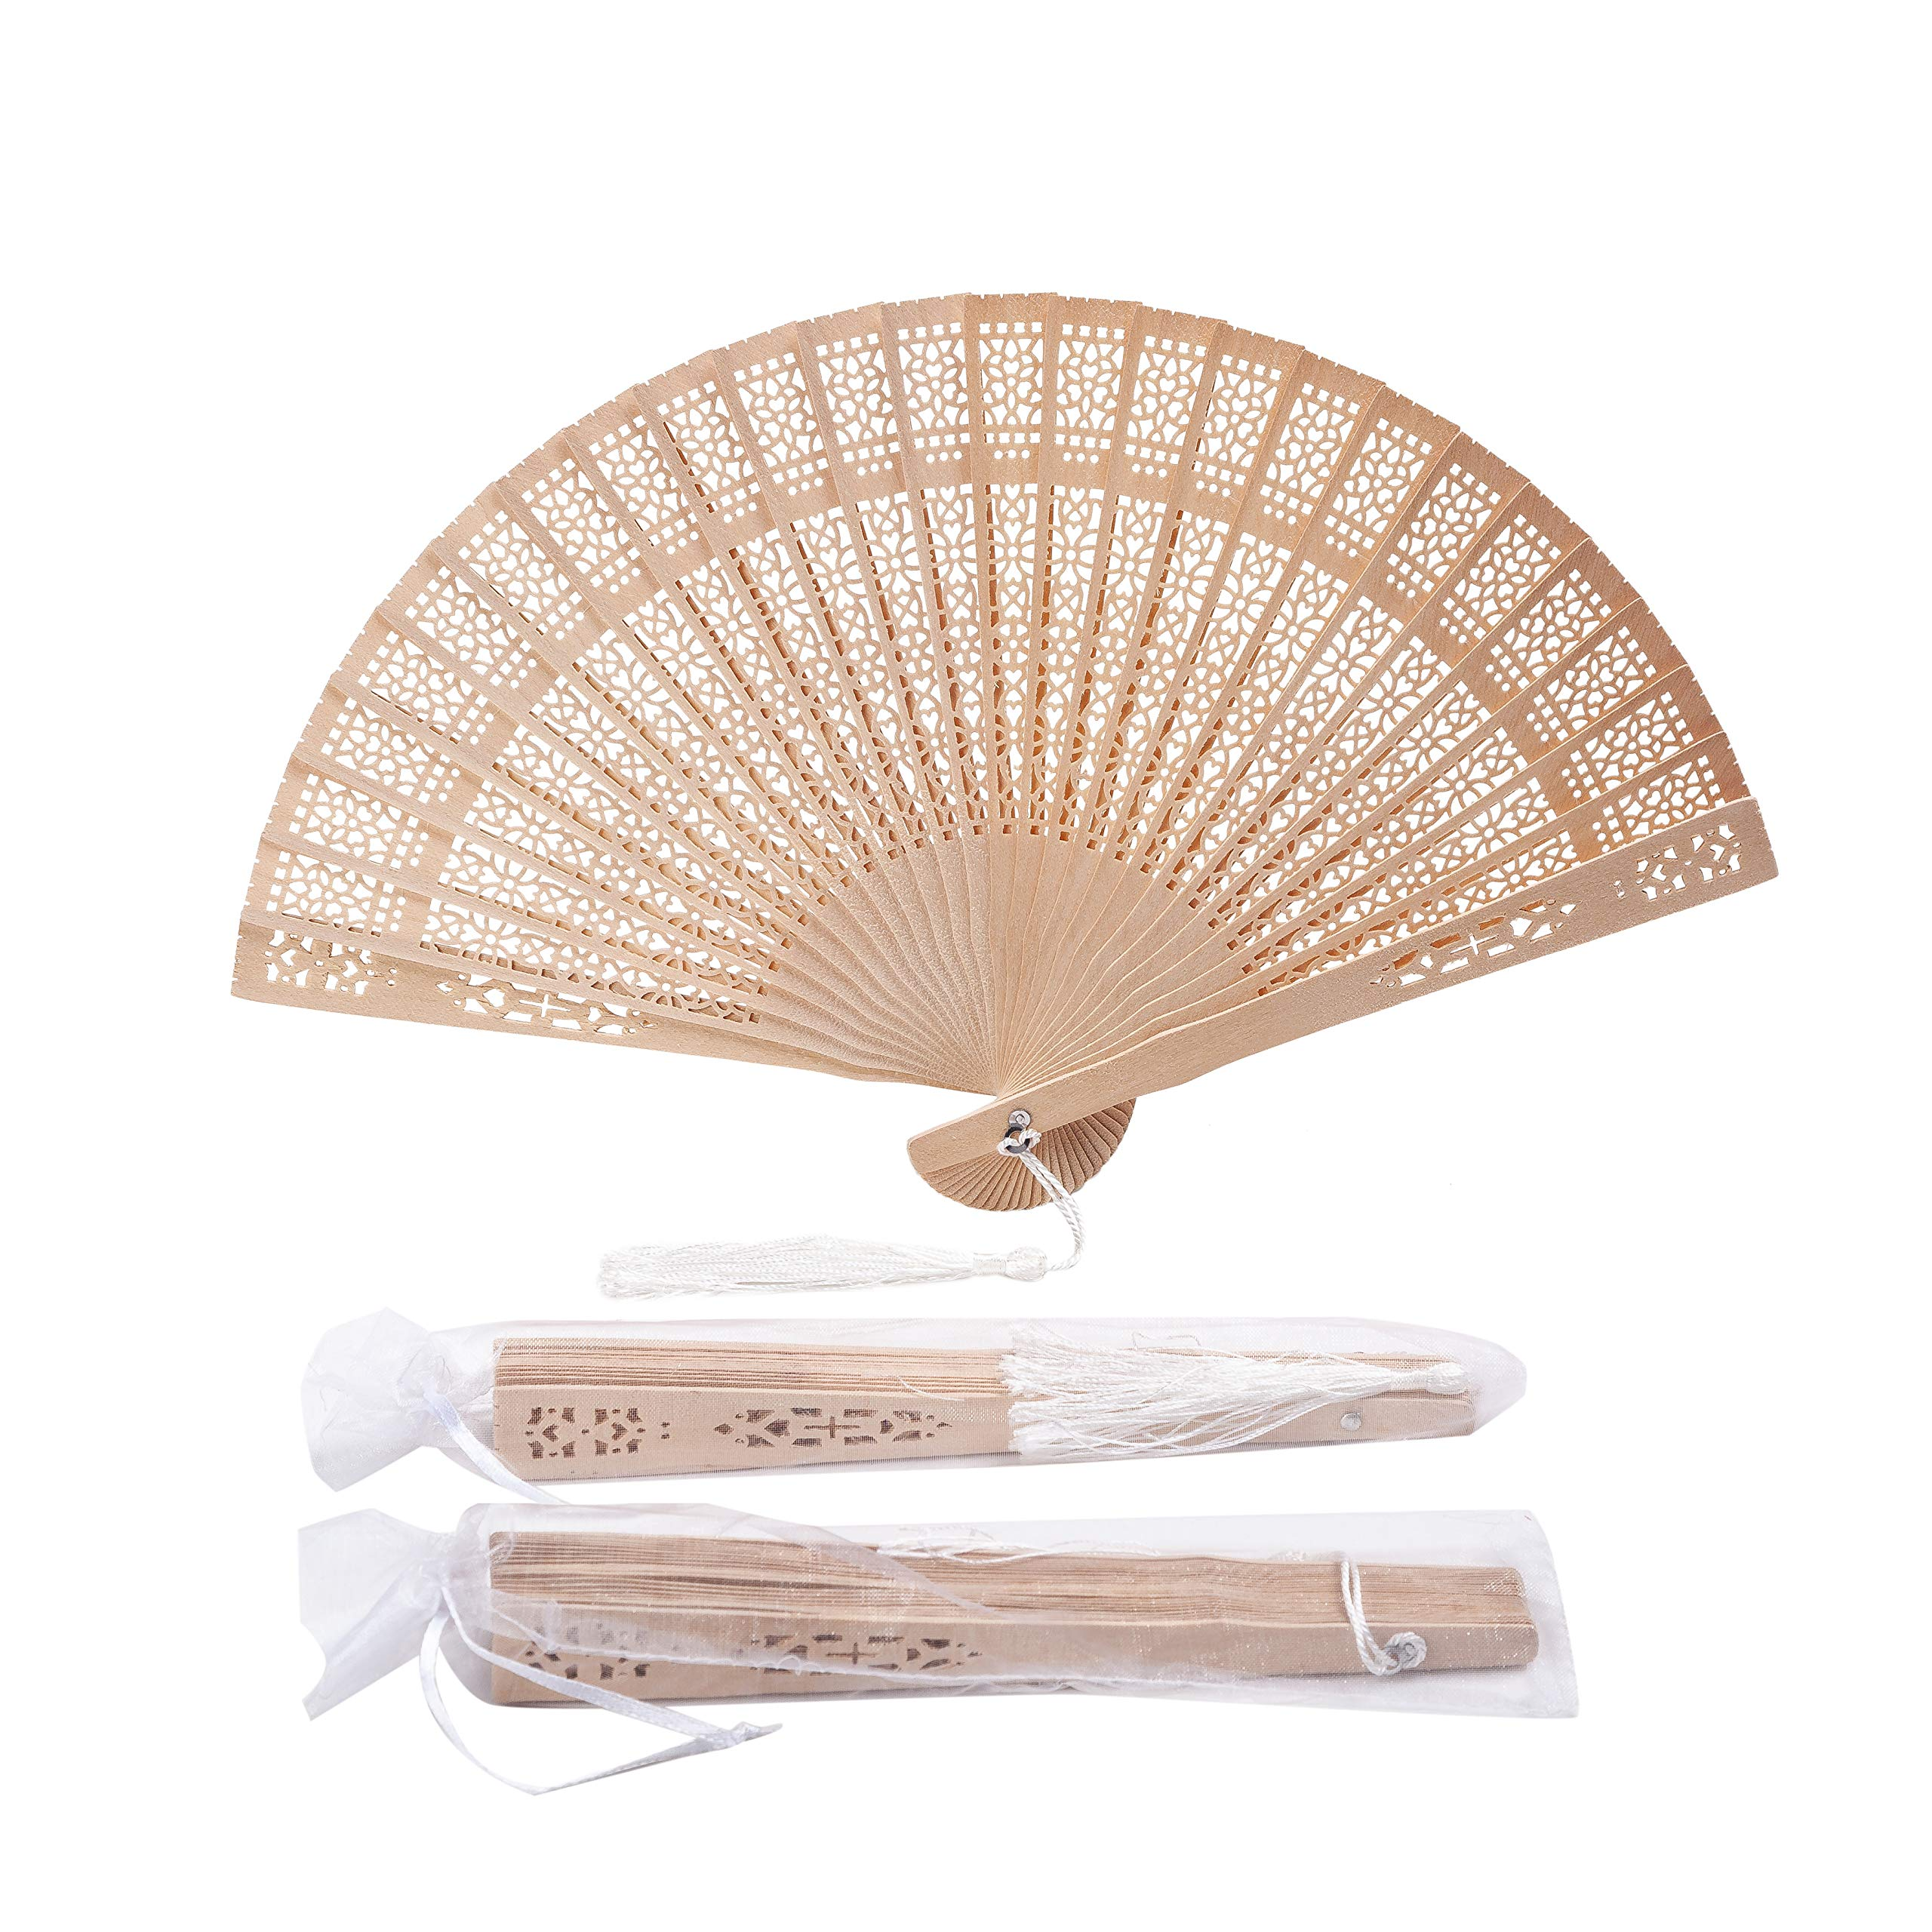 Sepwedd set of 50pcs Sandalwood Fan Baby Shower Gifts Favors with gift bags and tassels wooden folding fan by Sepwedd